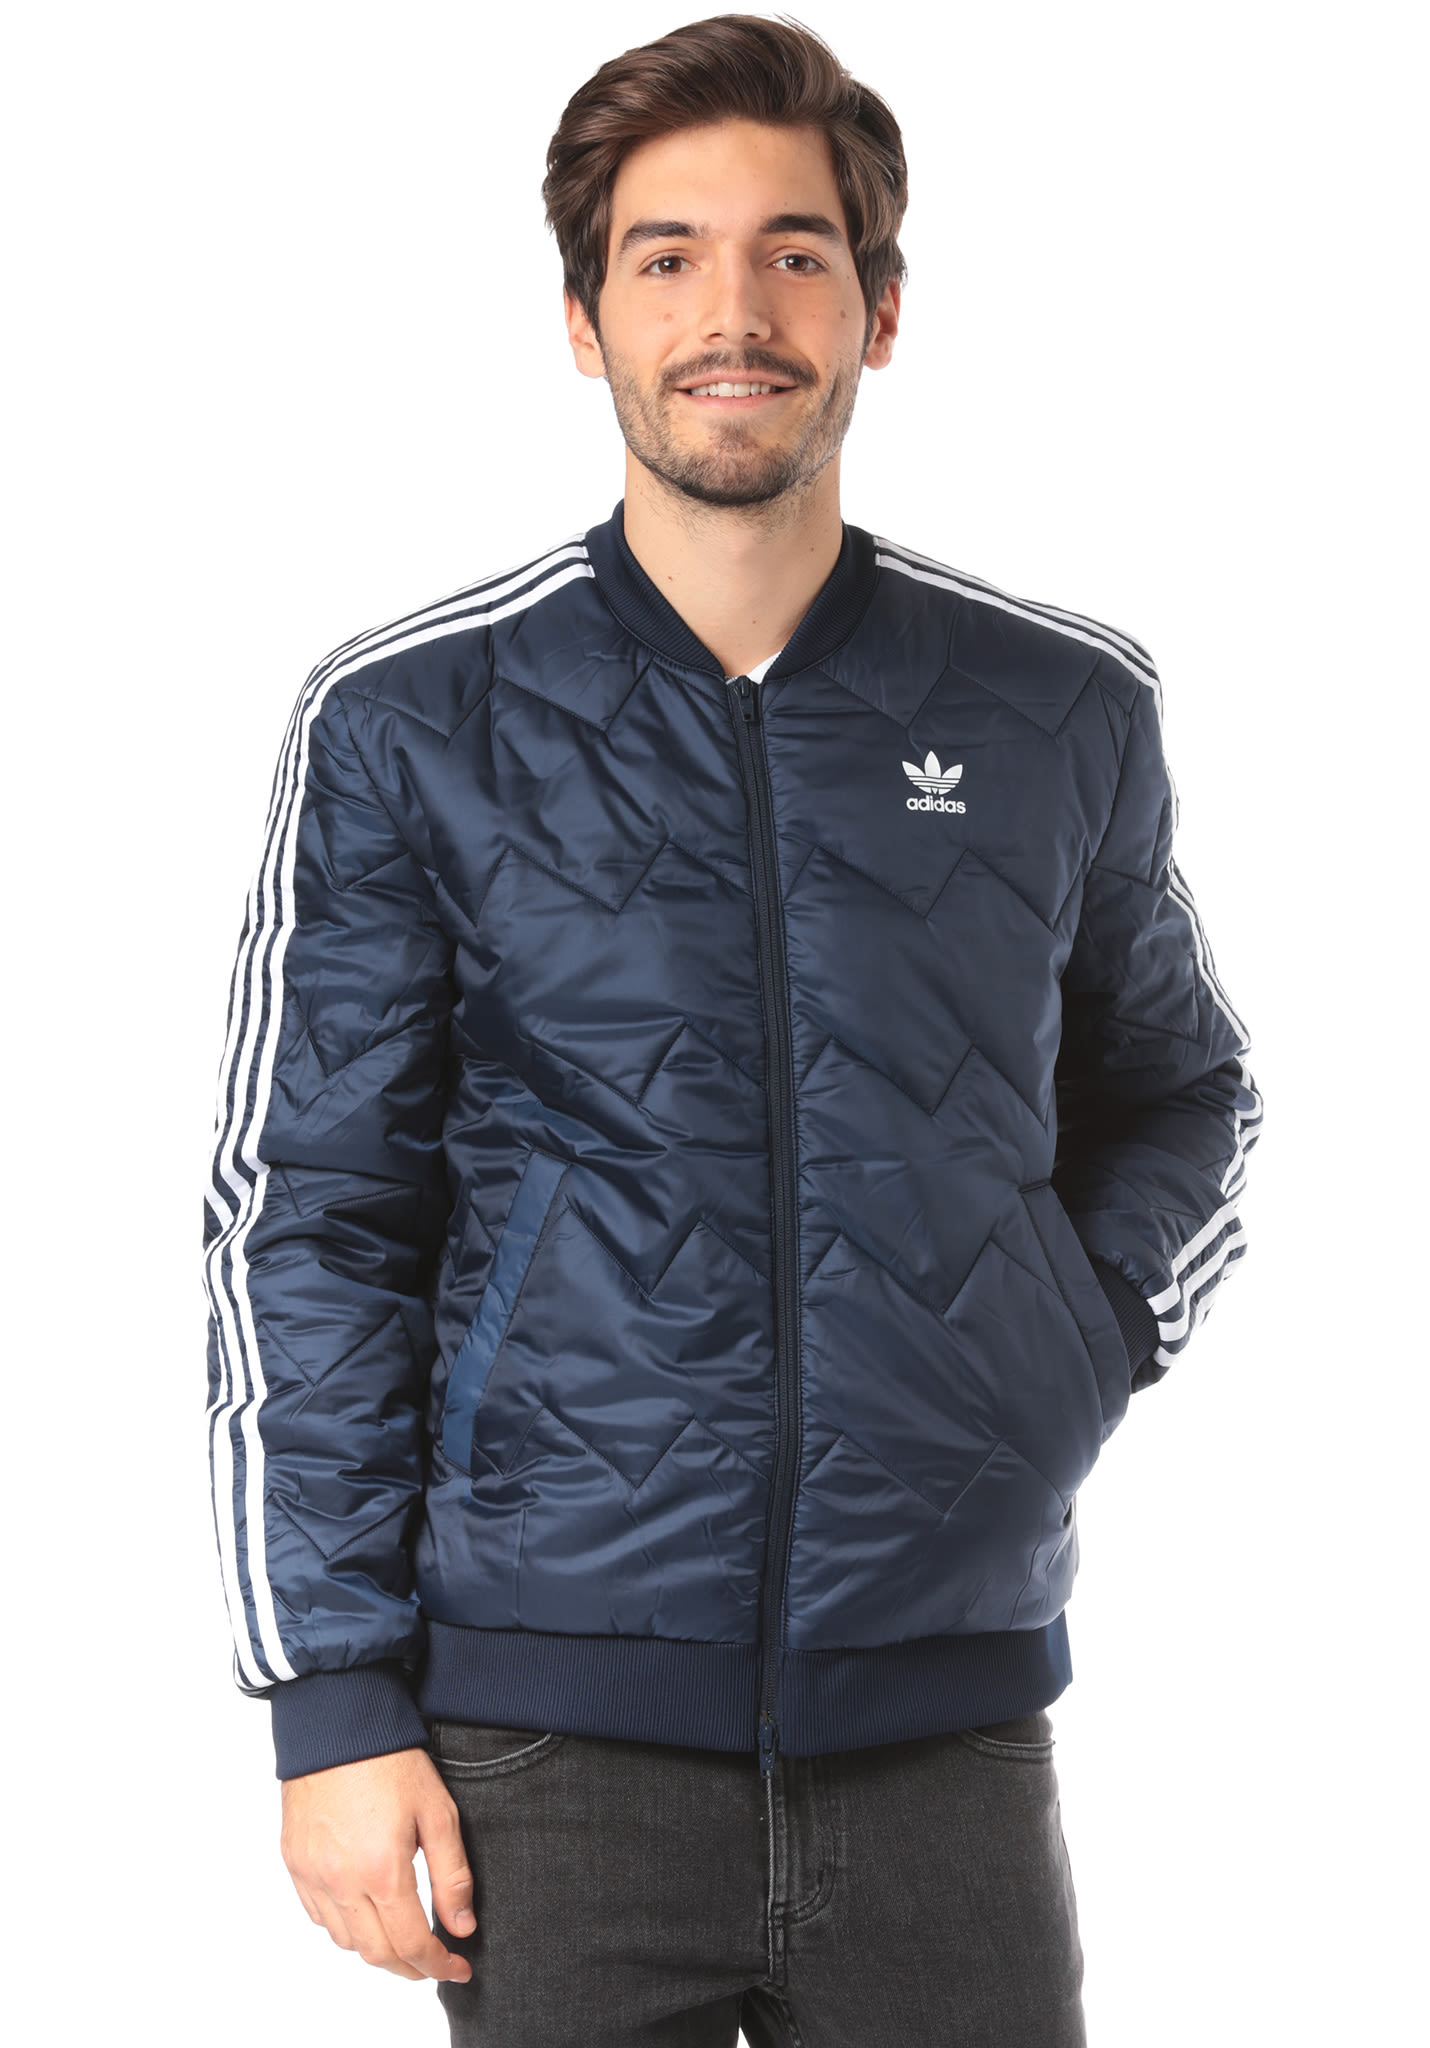 13c9ae7f8 ADIDAS ORIGINALS SST Quilted - Jacket for Men - Blue - Planet Sports